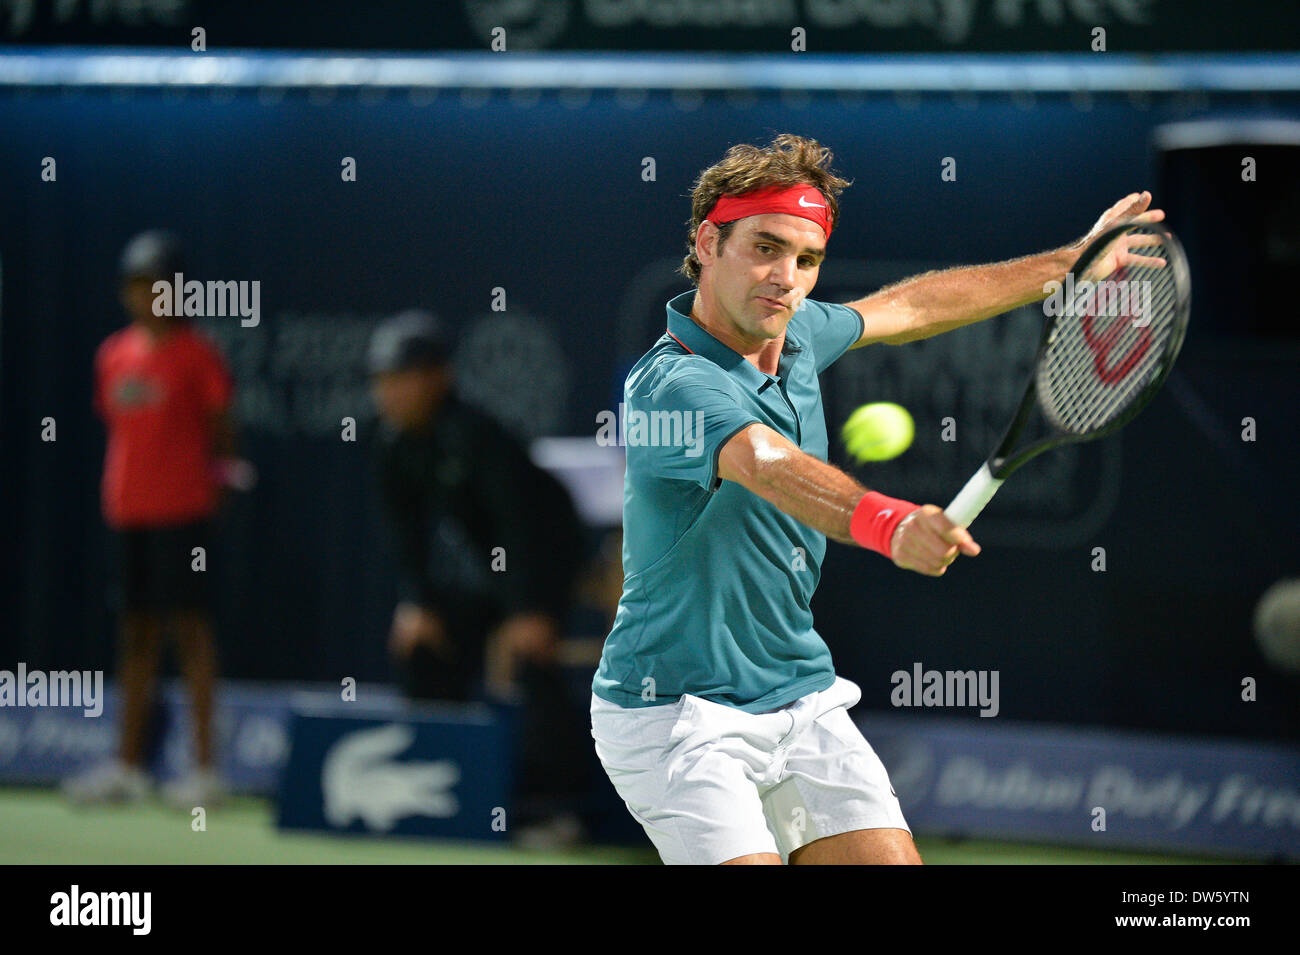 DUBAI, UAE, 27th Feb 2014. Roger Federer plays a backhand on his way to a 3-6 6-3 6-2 against Novak Djokovic in the quarterfinals of the Dubai Duty Free Tennis Championships. Federer booked his spot in the finals of the tournament with this victory Credit:  Feroz Khan/Alamy Live News - Stock Image